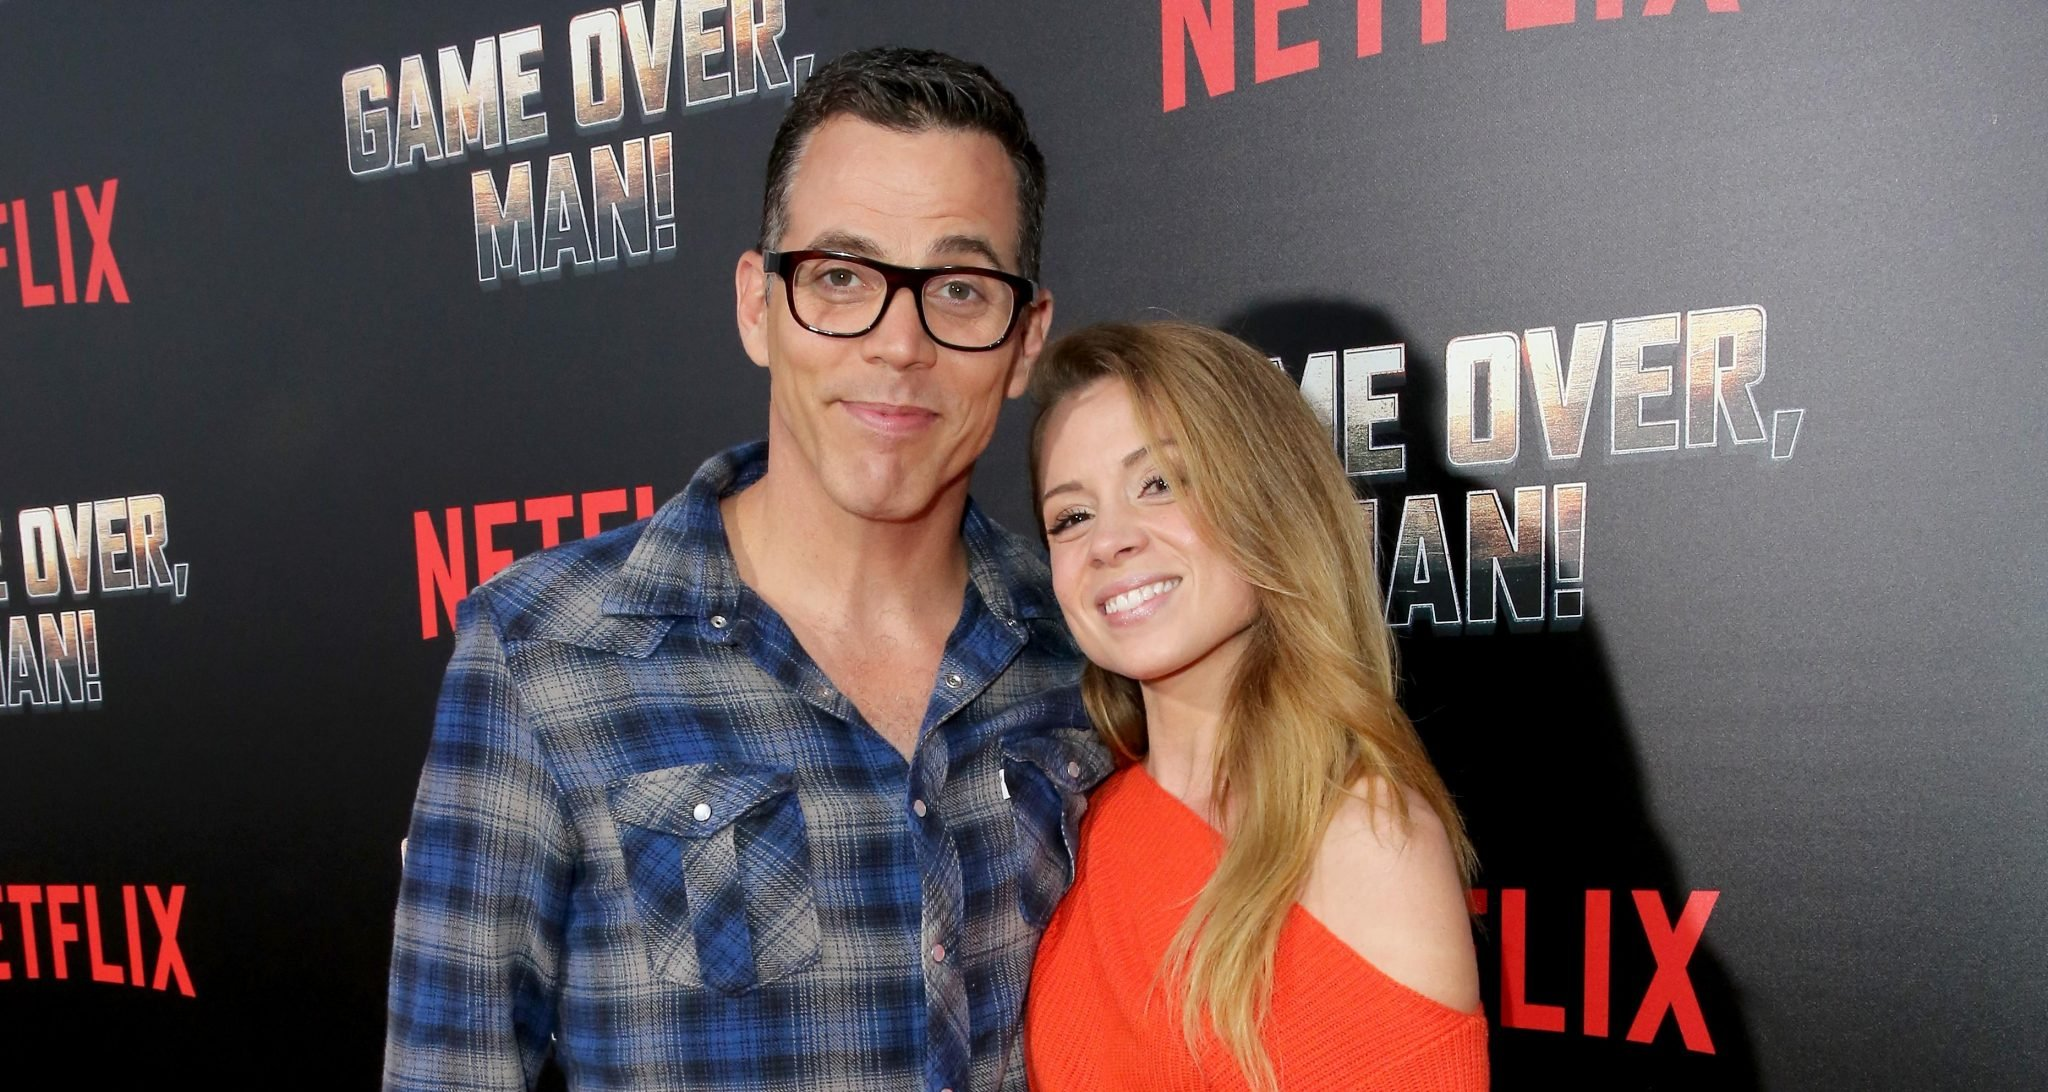 Steve-O (L) and Lux Wright attend the premiere of the Netflix film 'Game Over, Man!' at the Regency Village Westwood